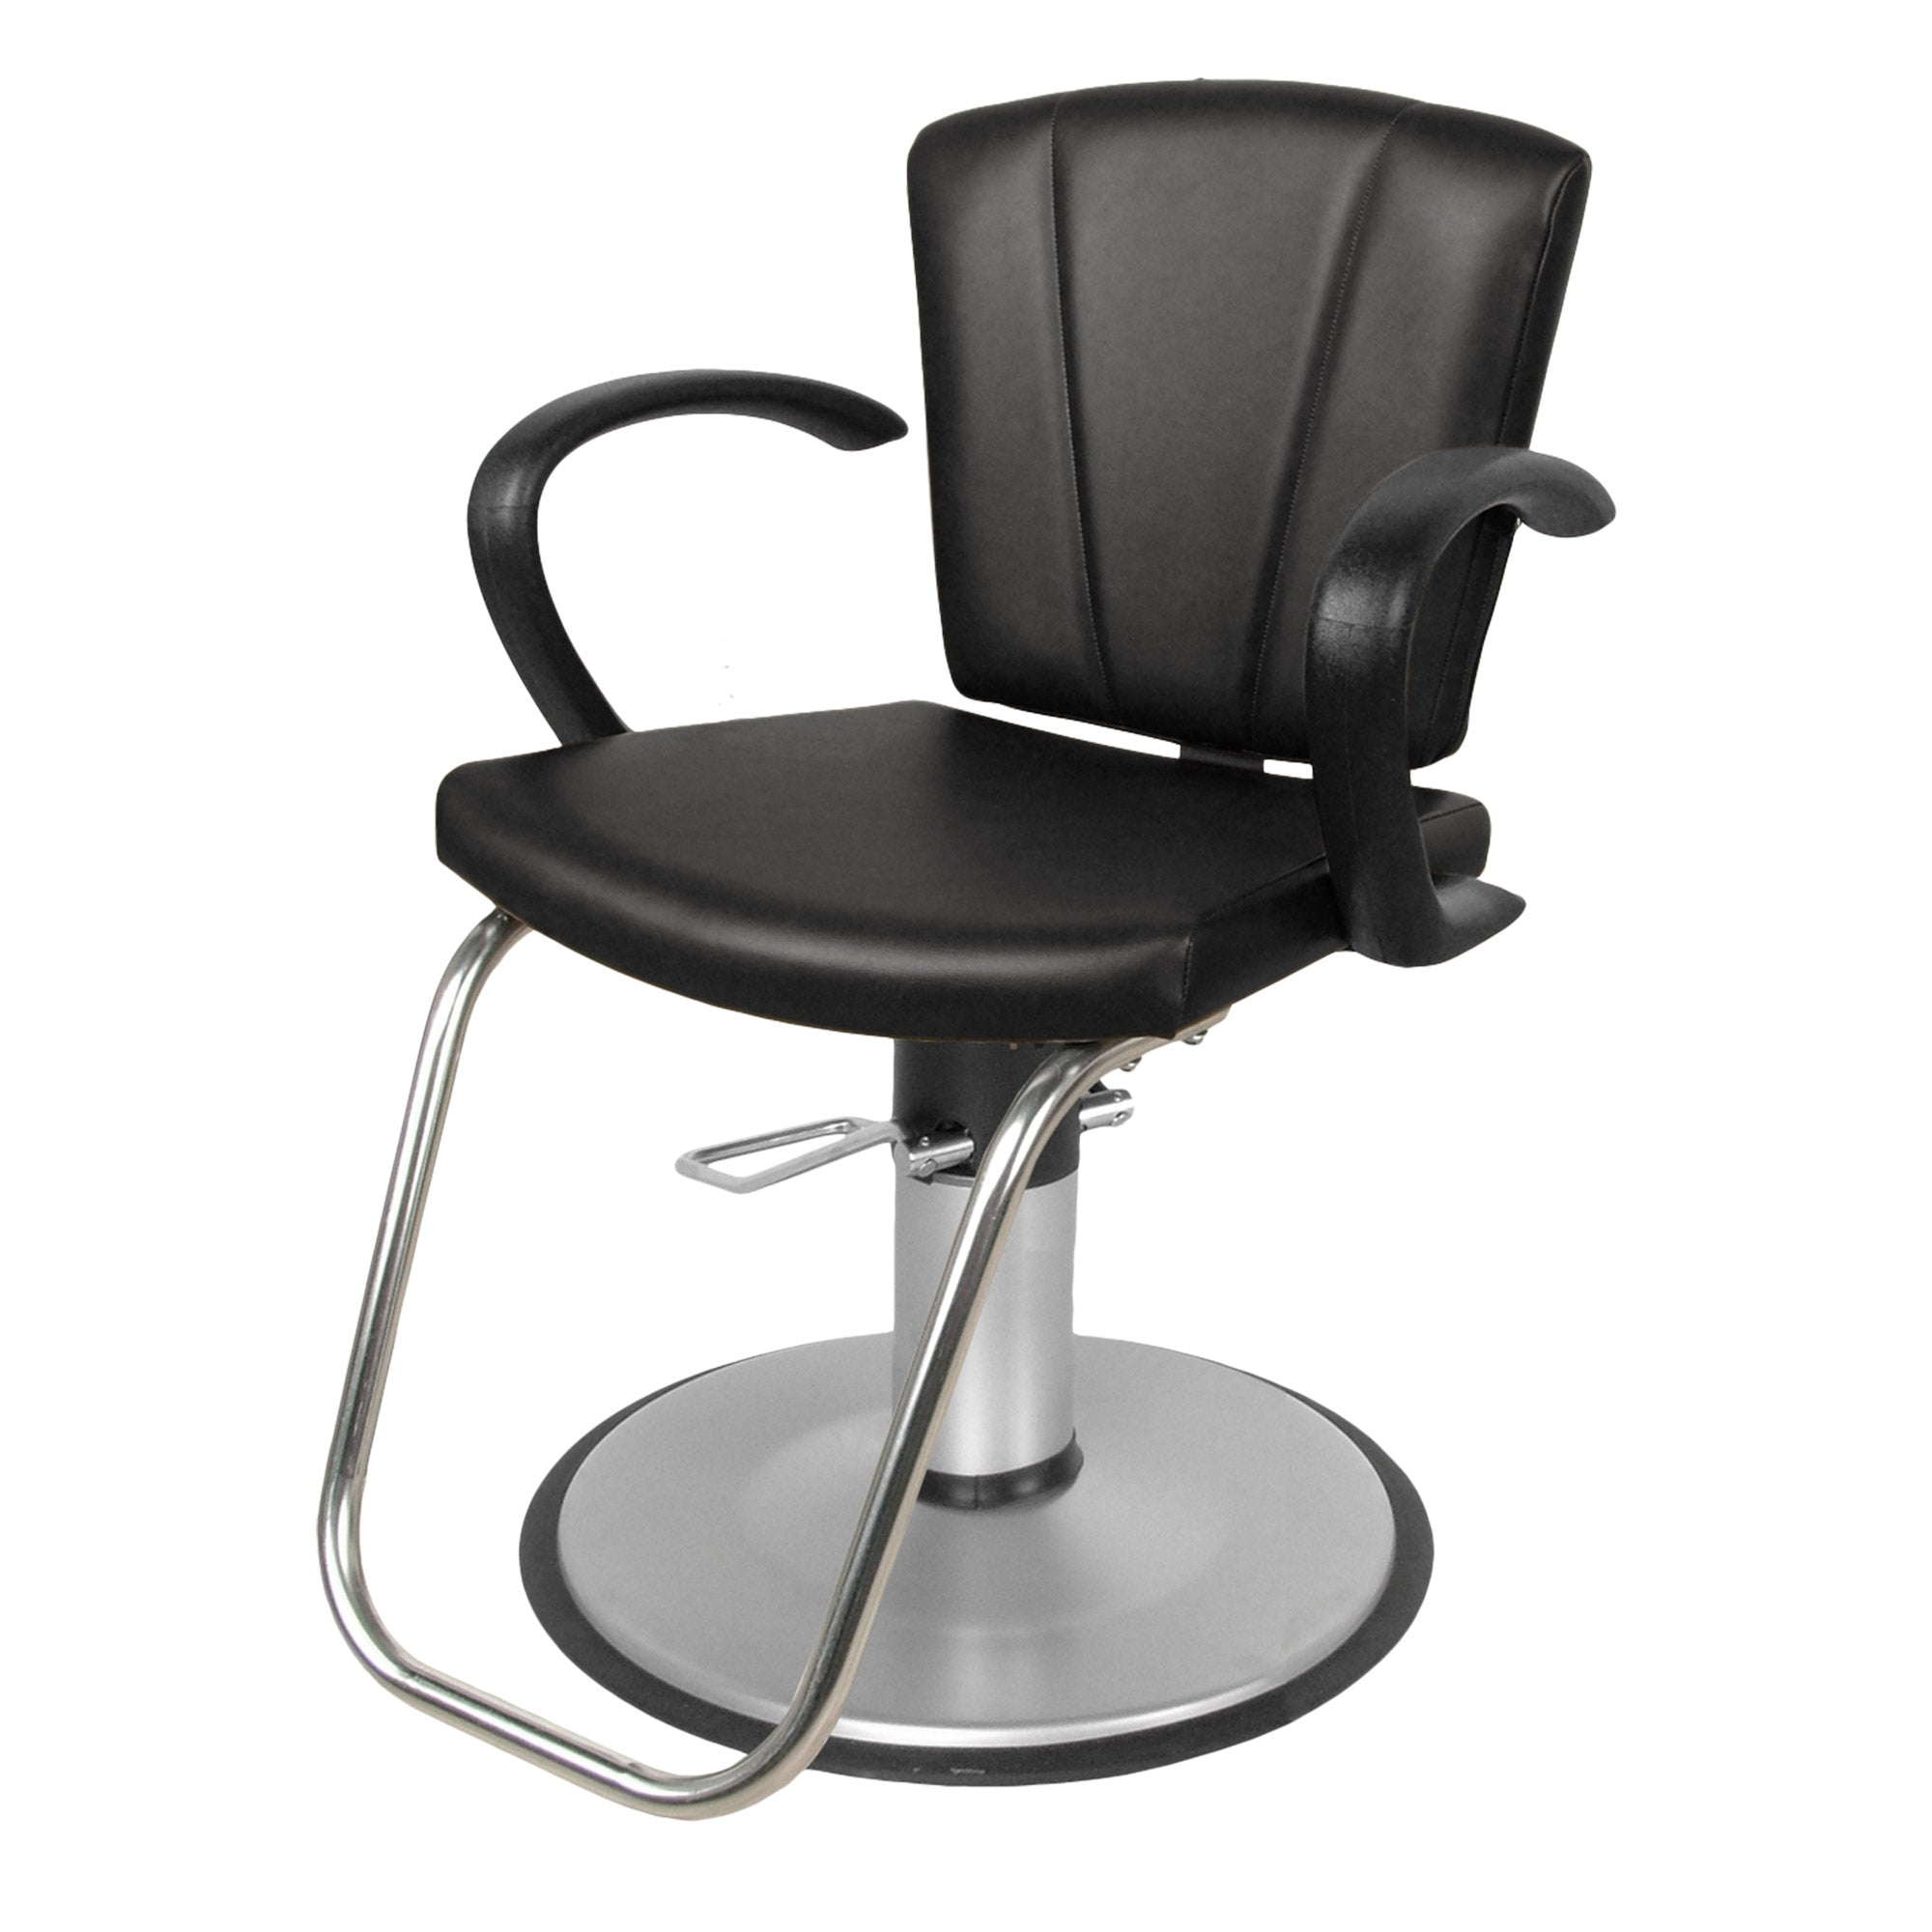 Sean Patrick Styling Chair - Collins